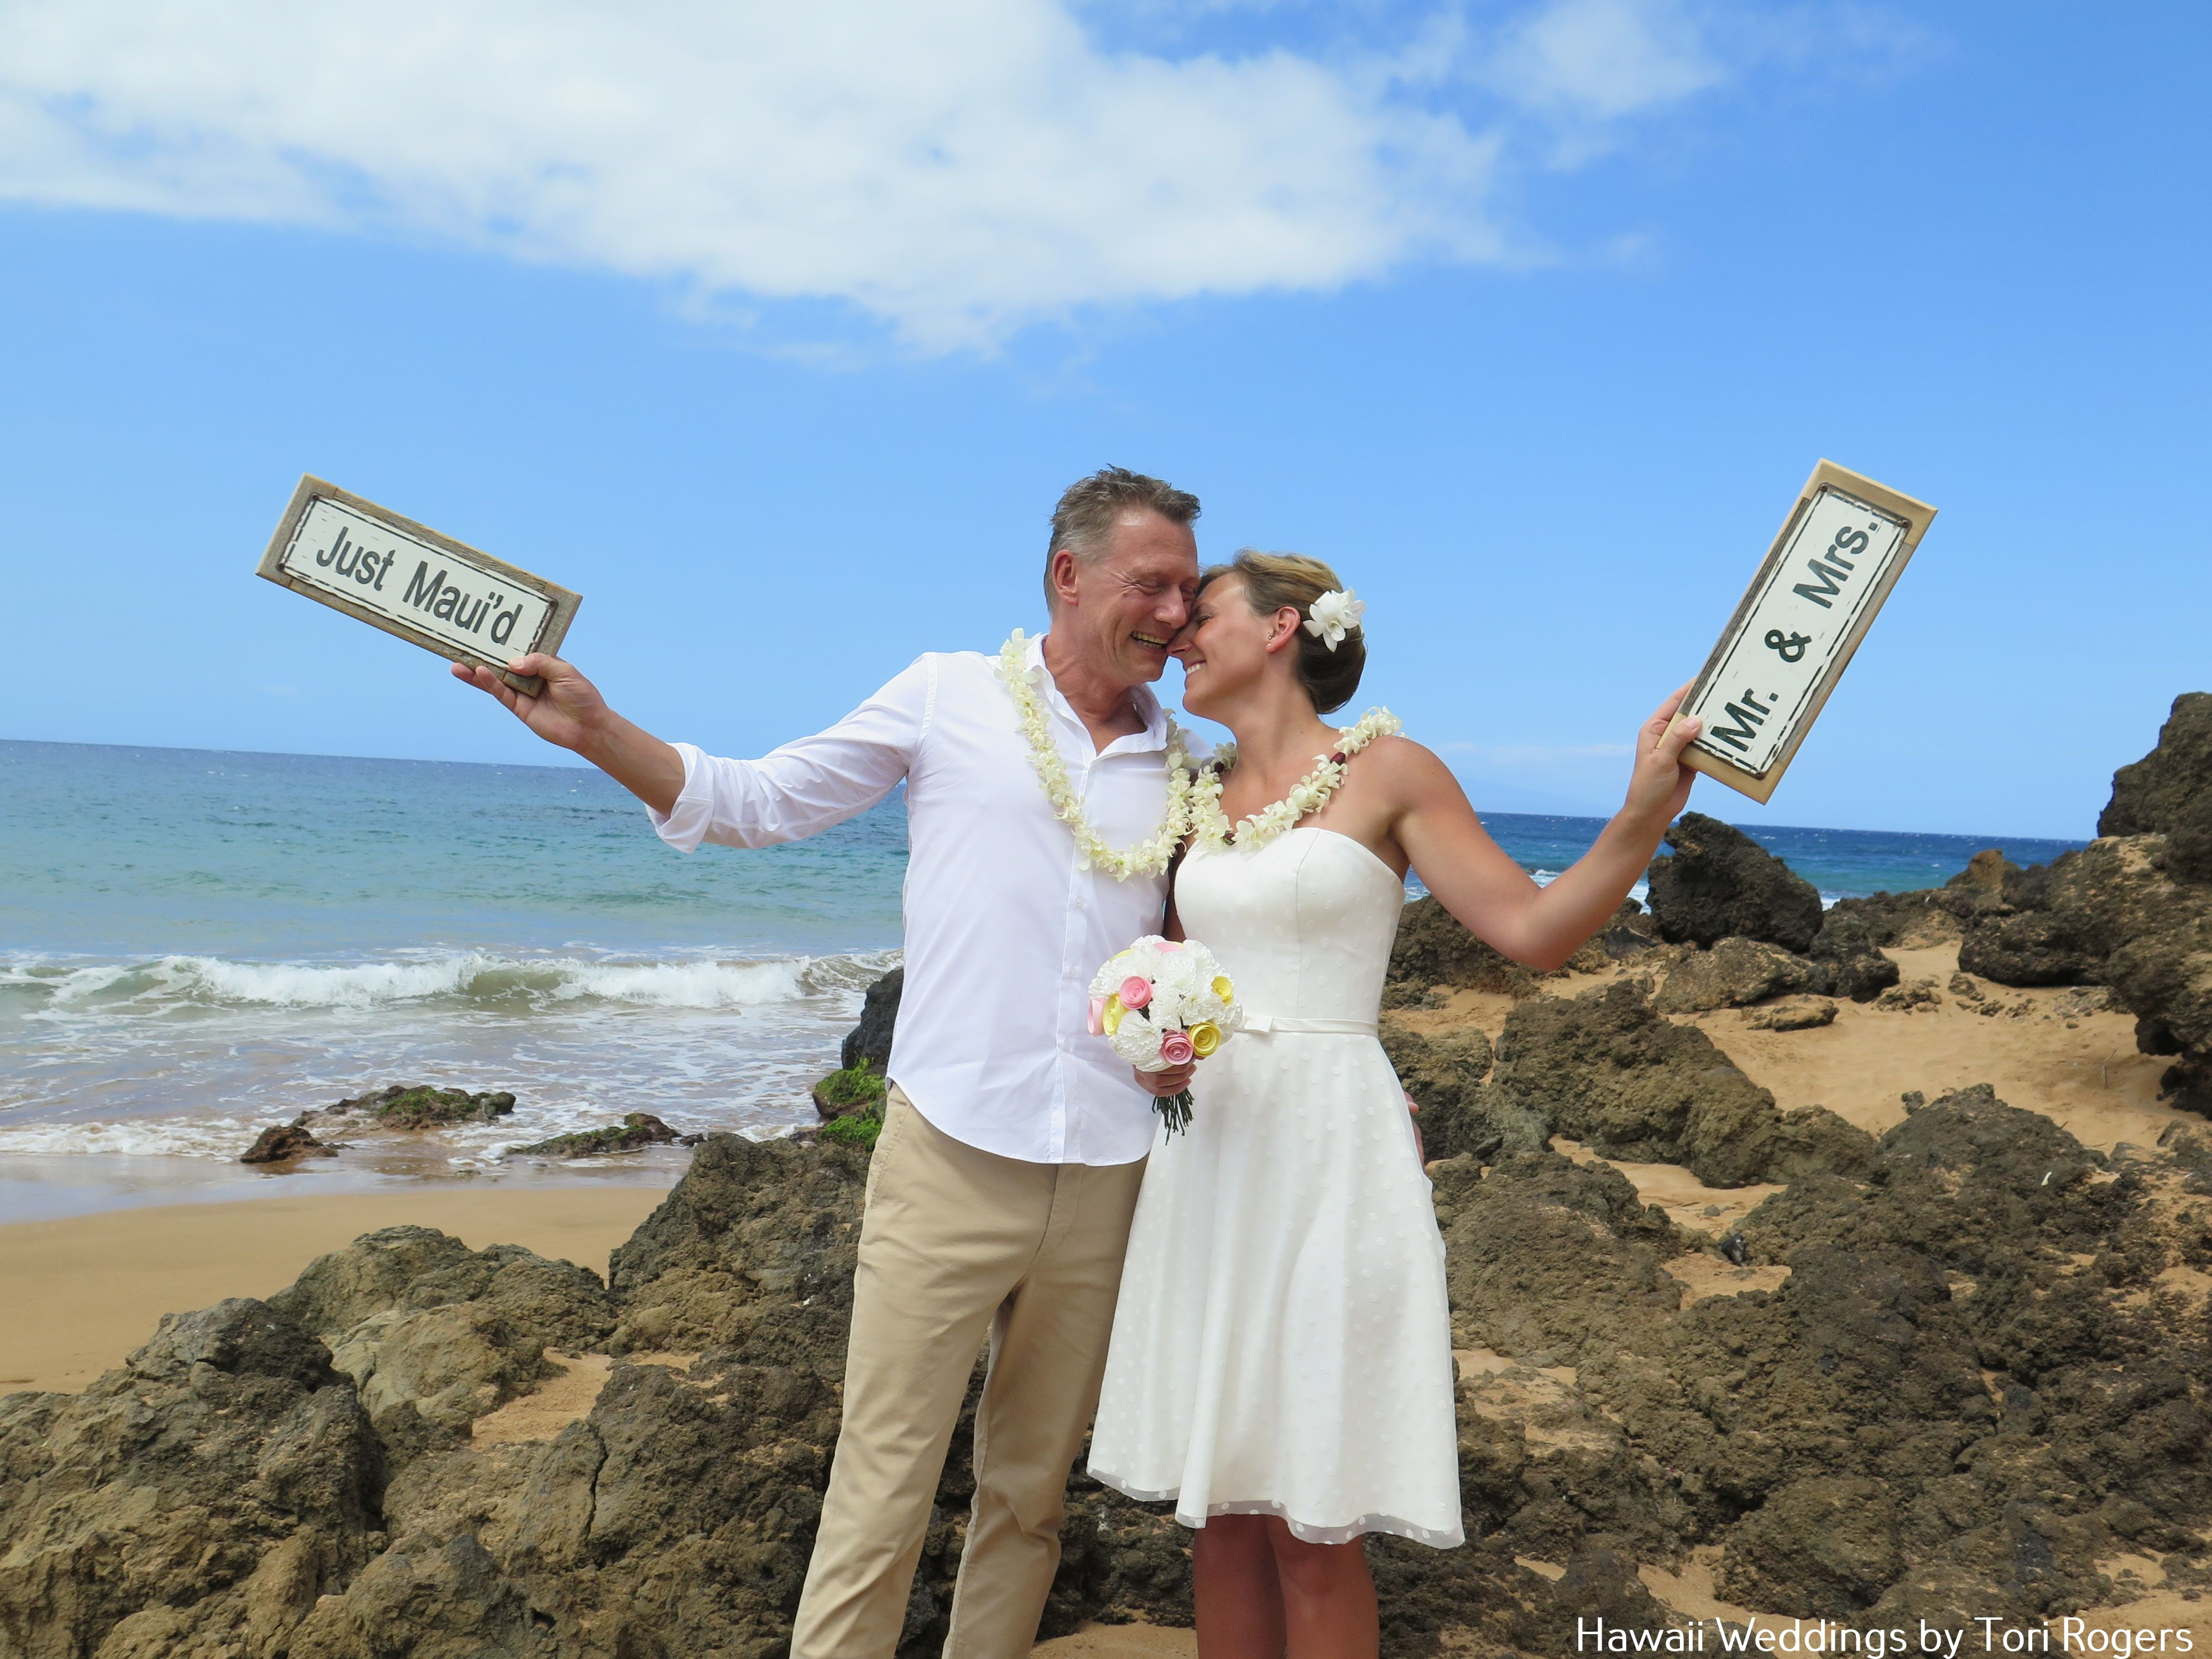 Just Mauid And Mr Mrs Signs Hawaii Weddings By Tori